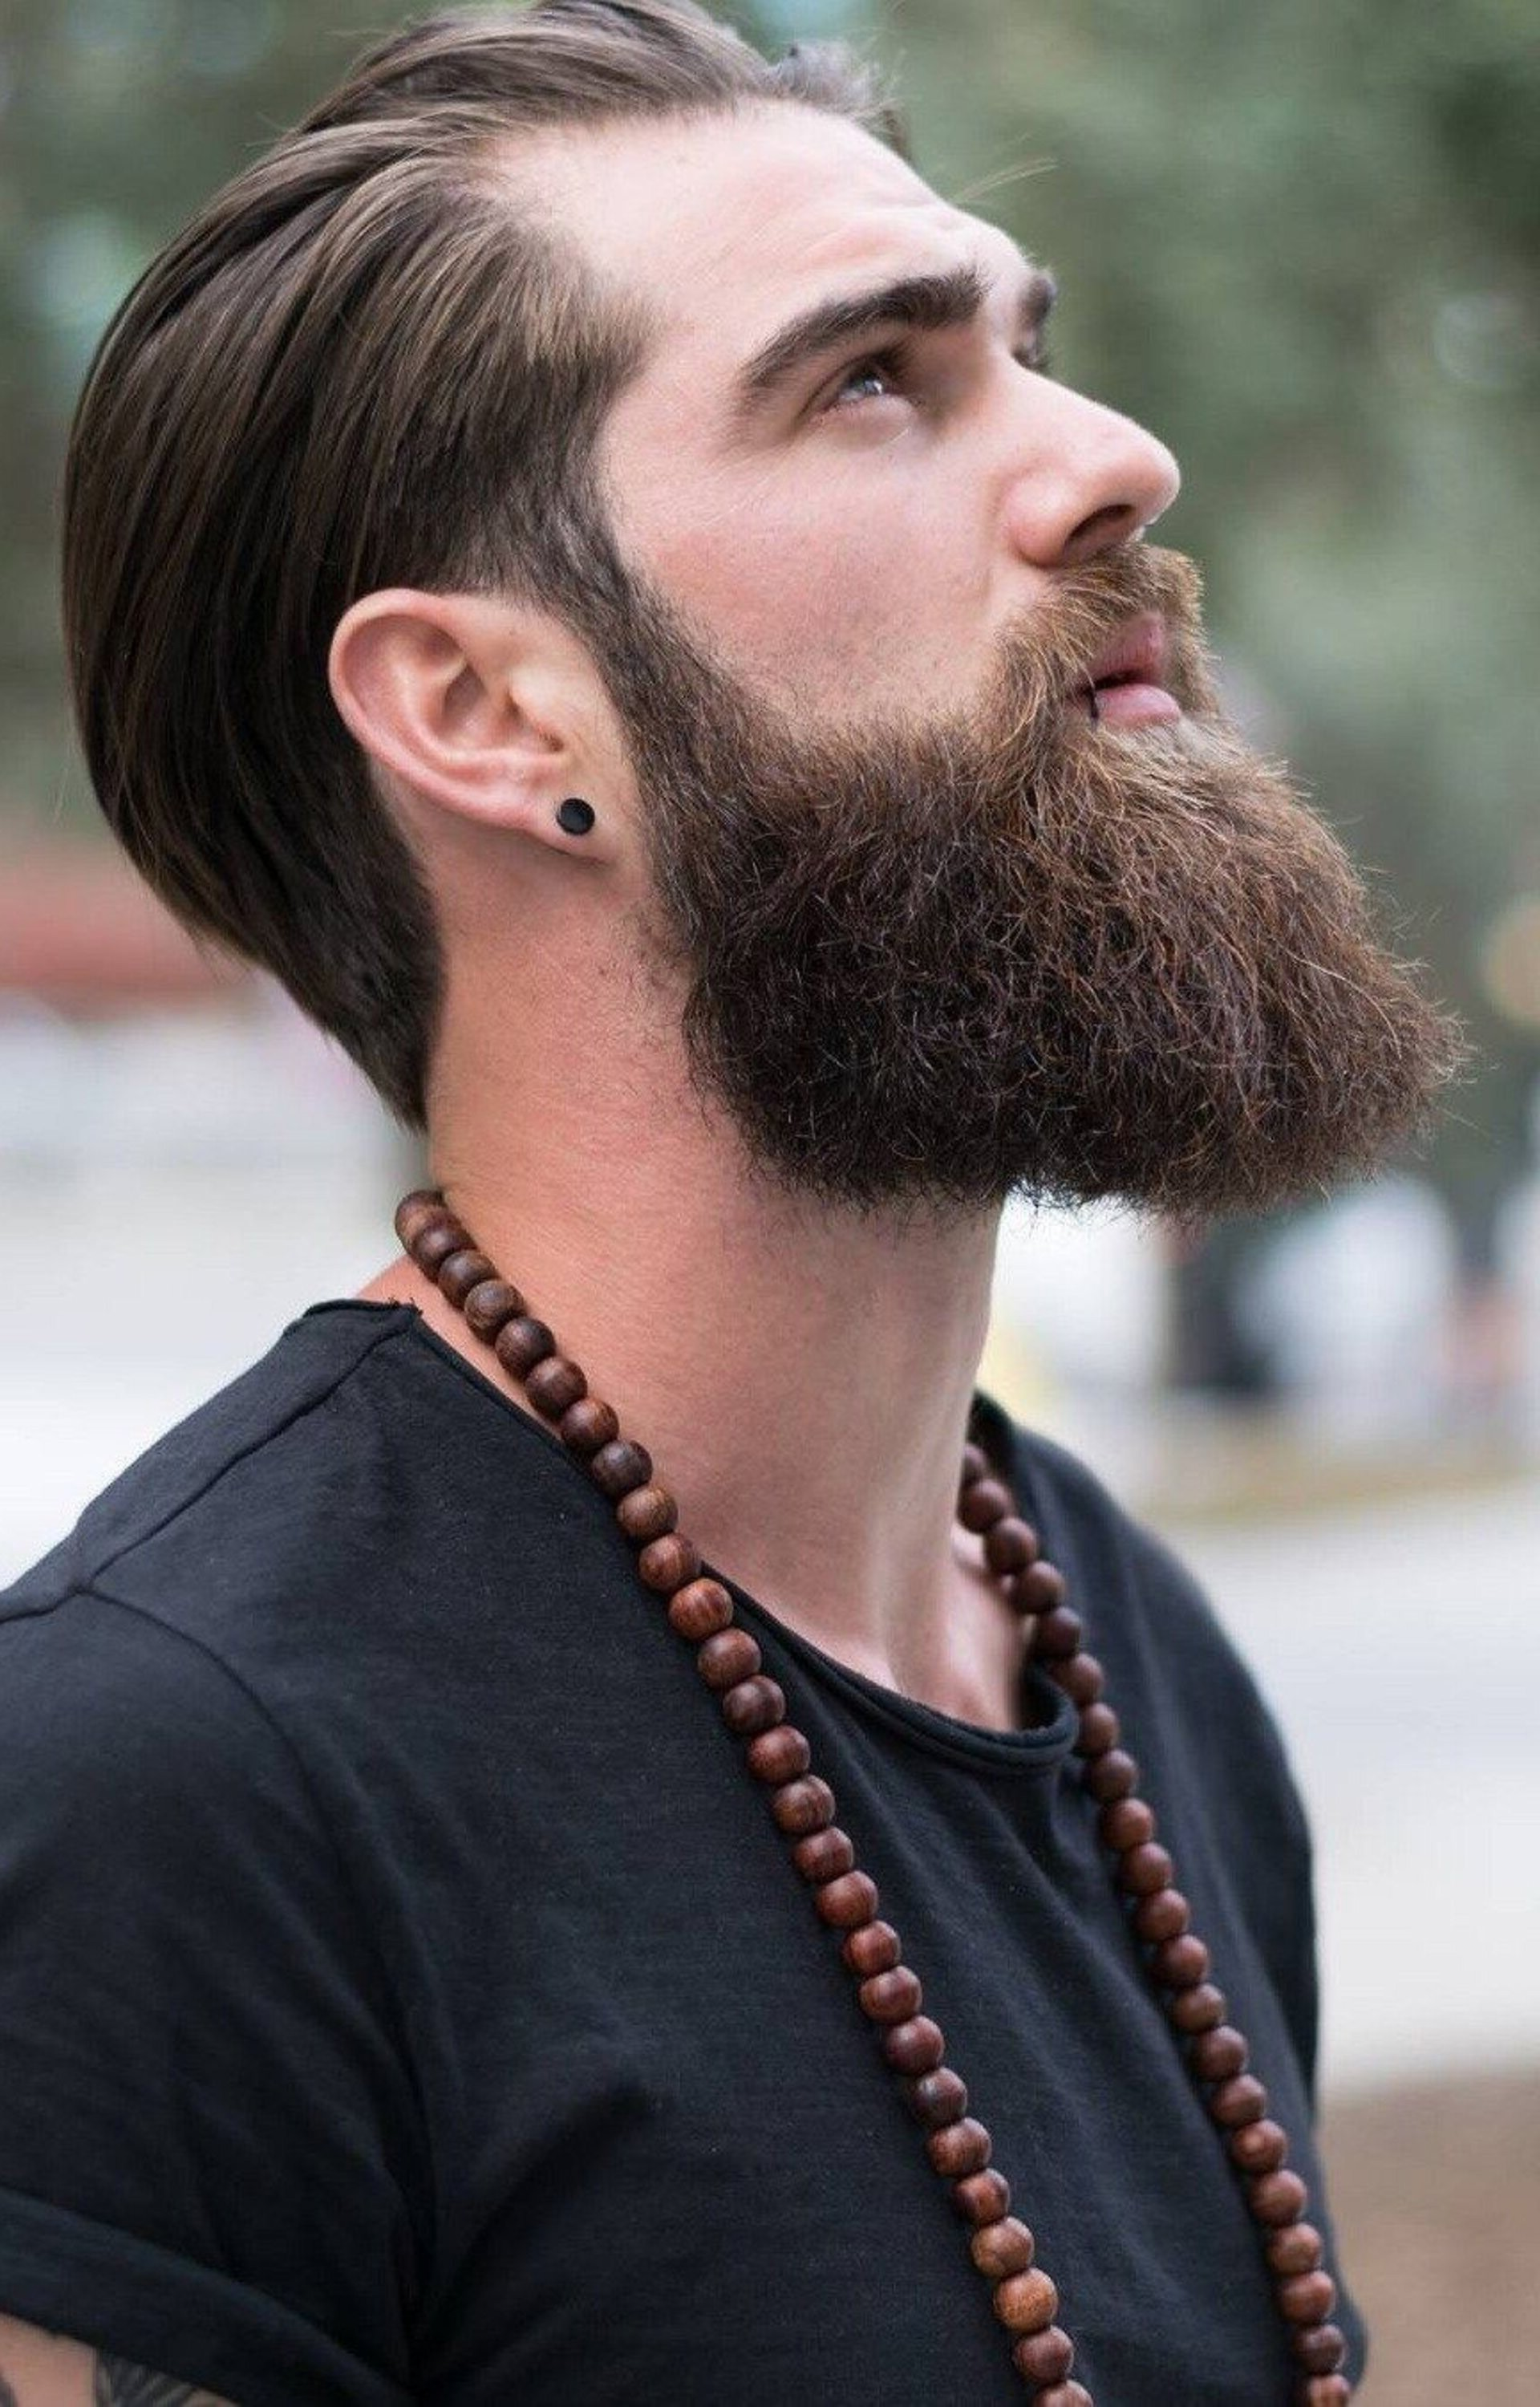 A full neckline beard for males.